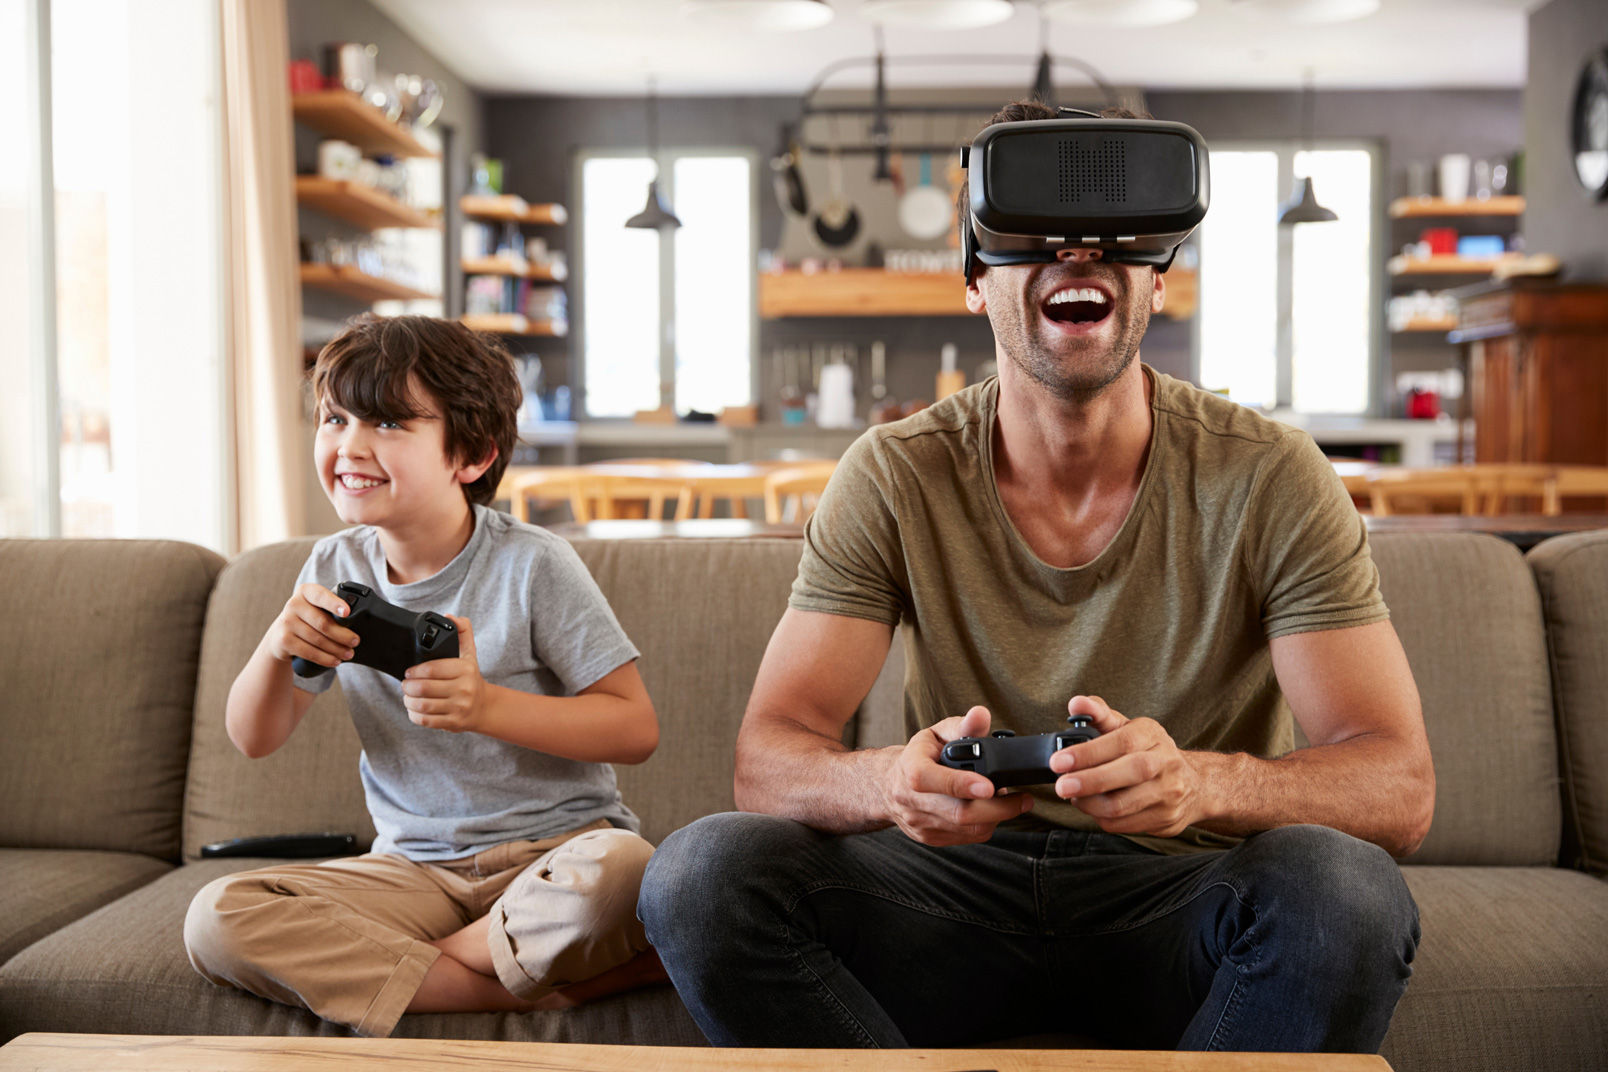 10 Incredible Advances in Gaming Technology